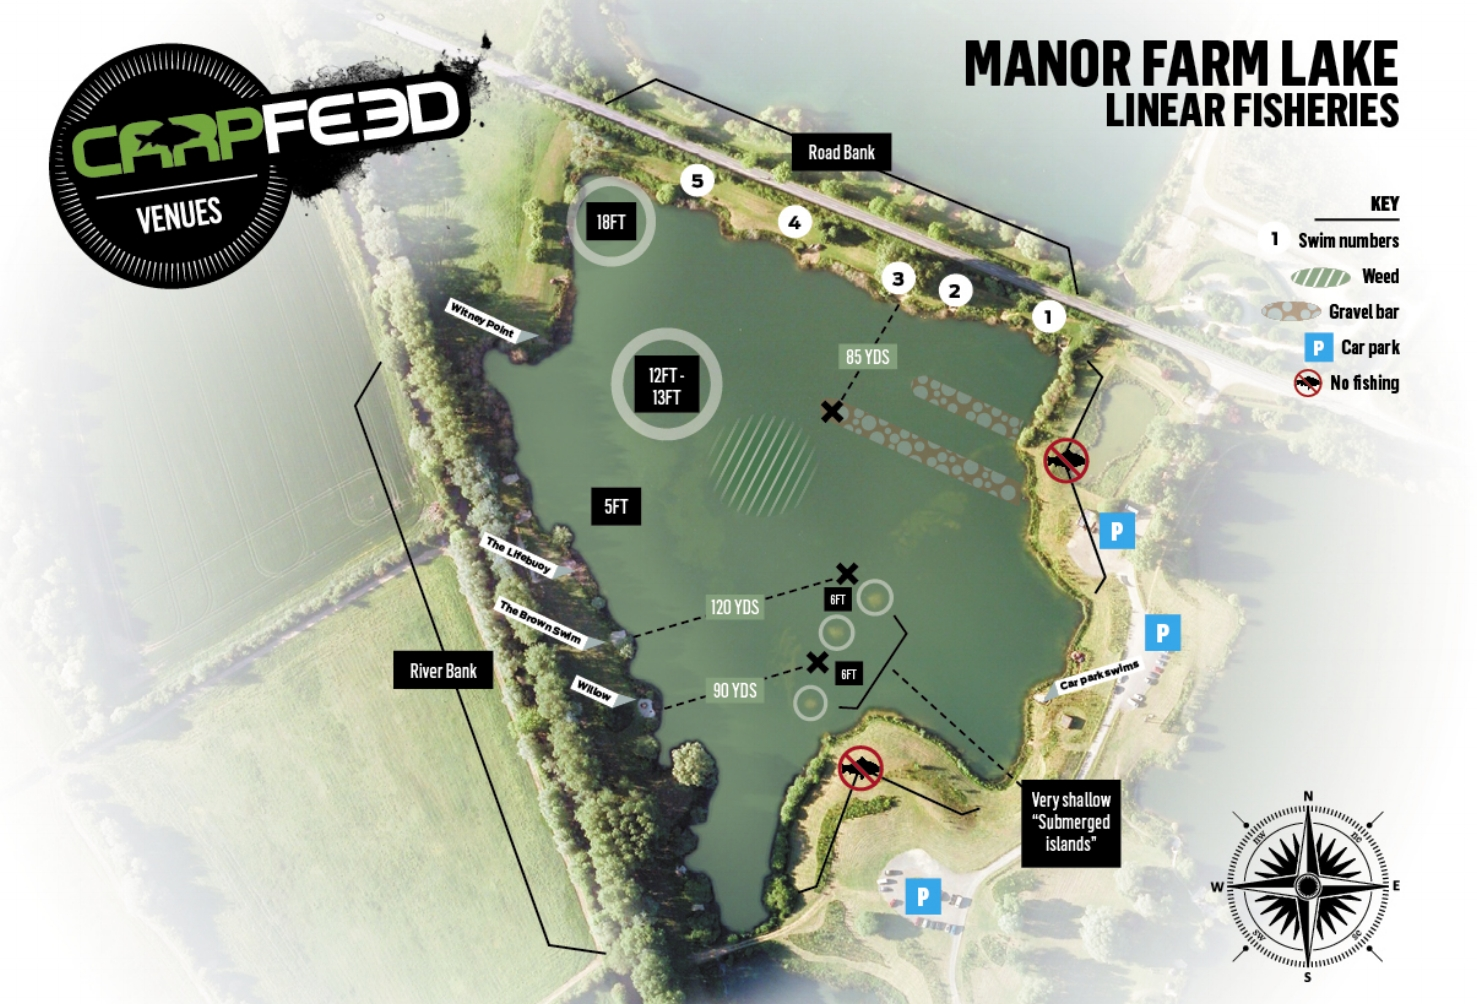 CLICK FOR OUR GUIDE TO MANOR